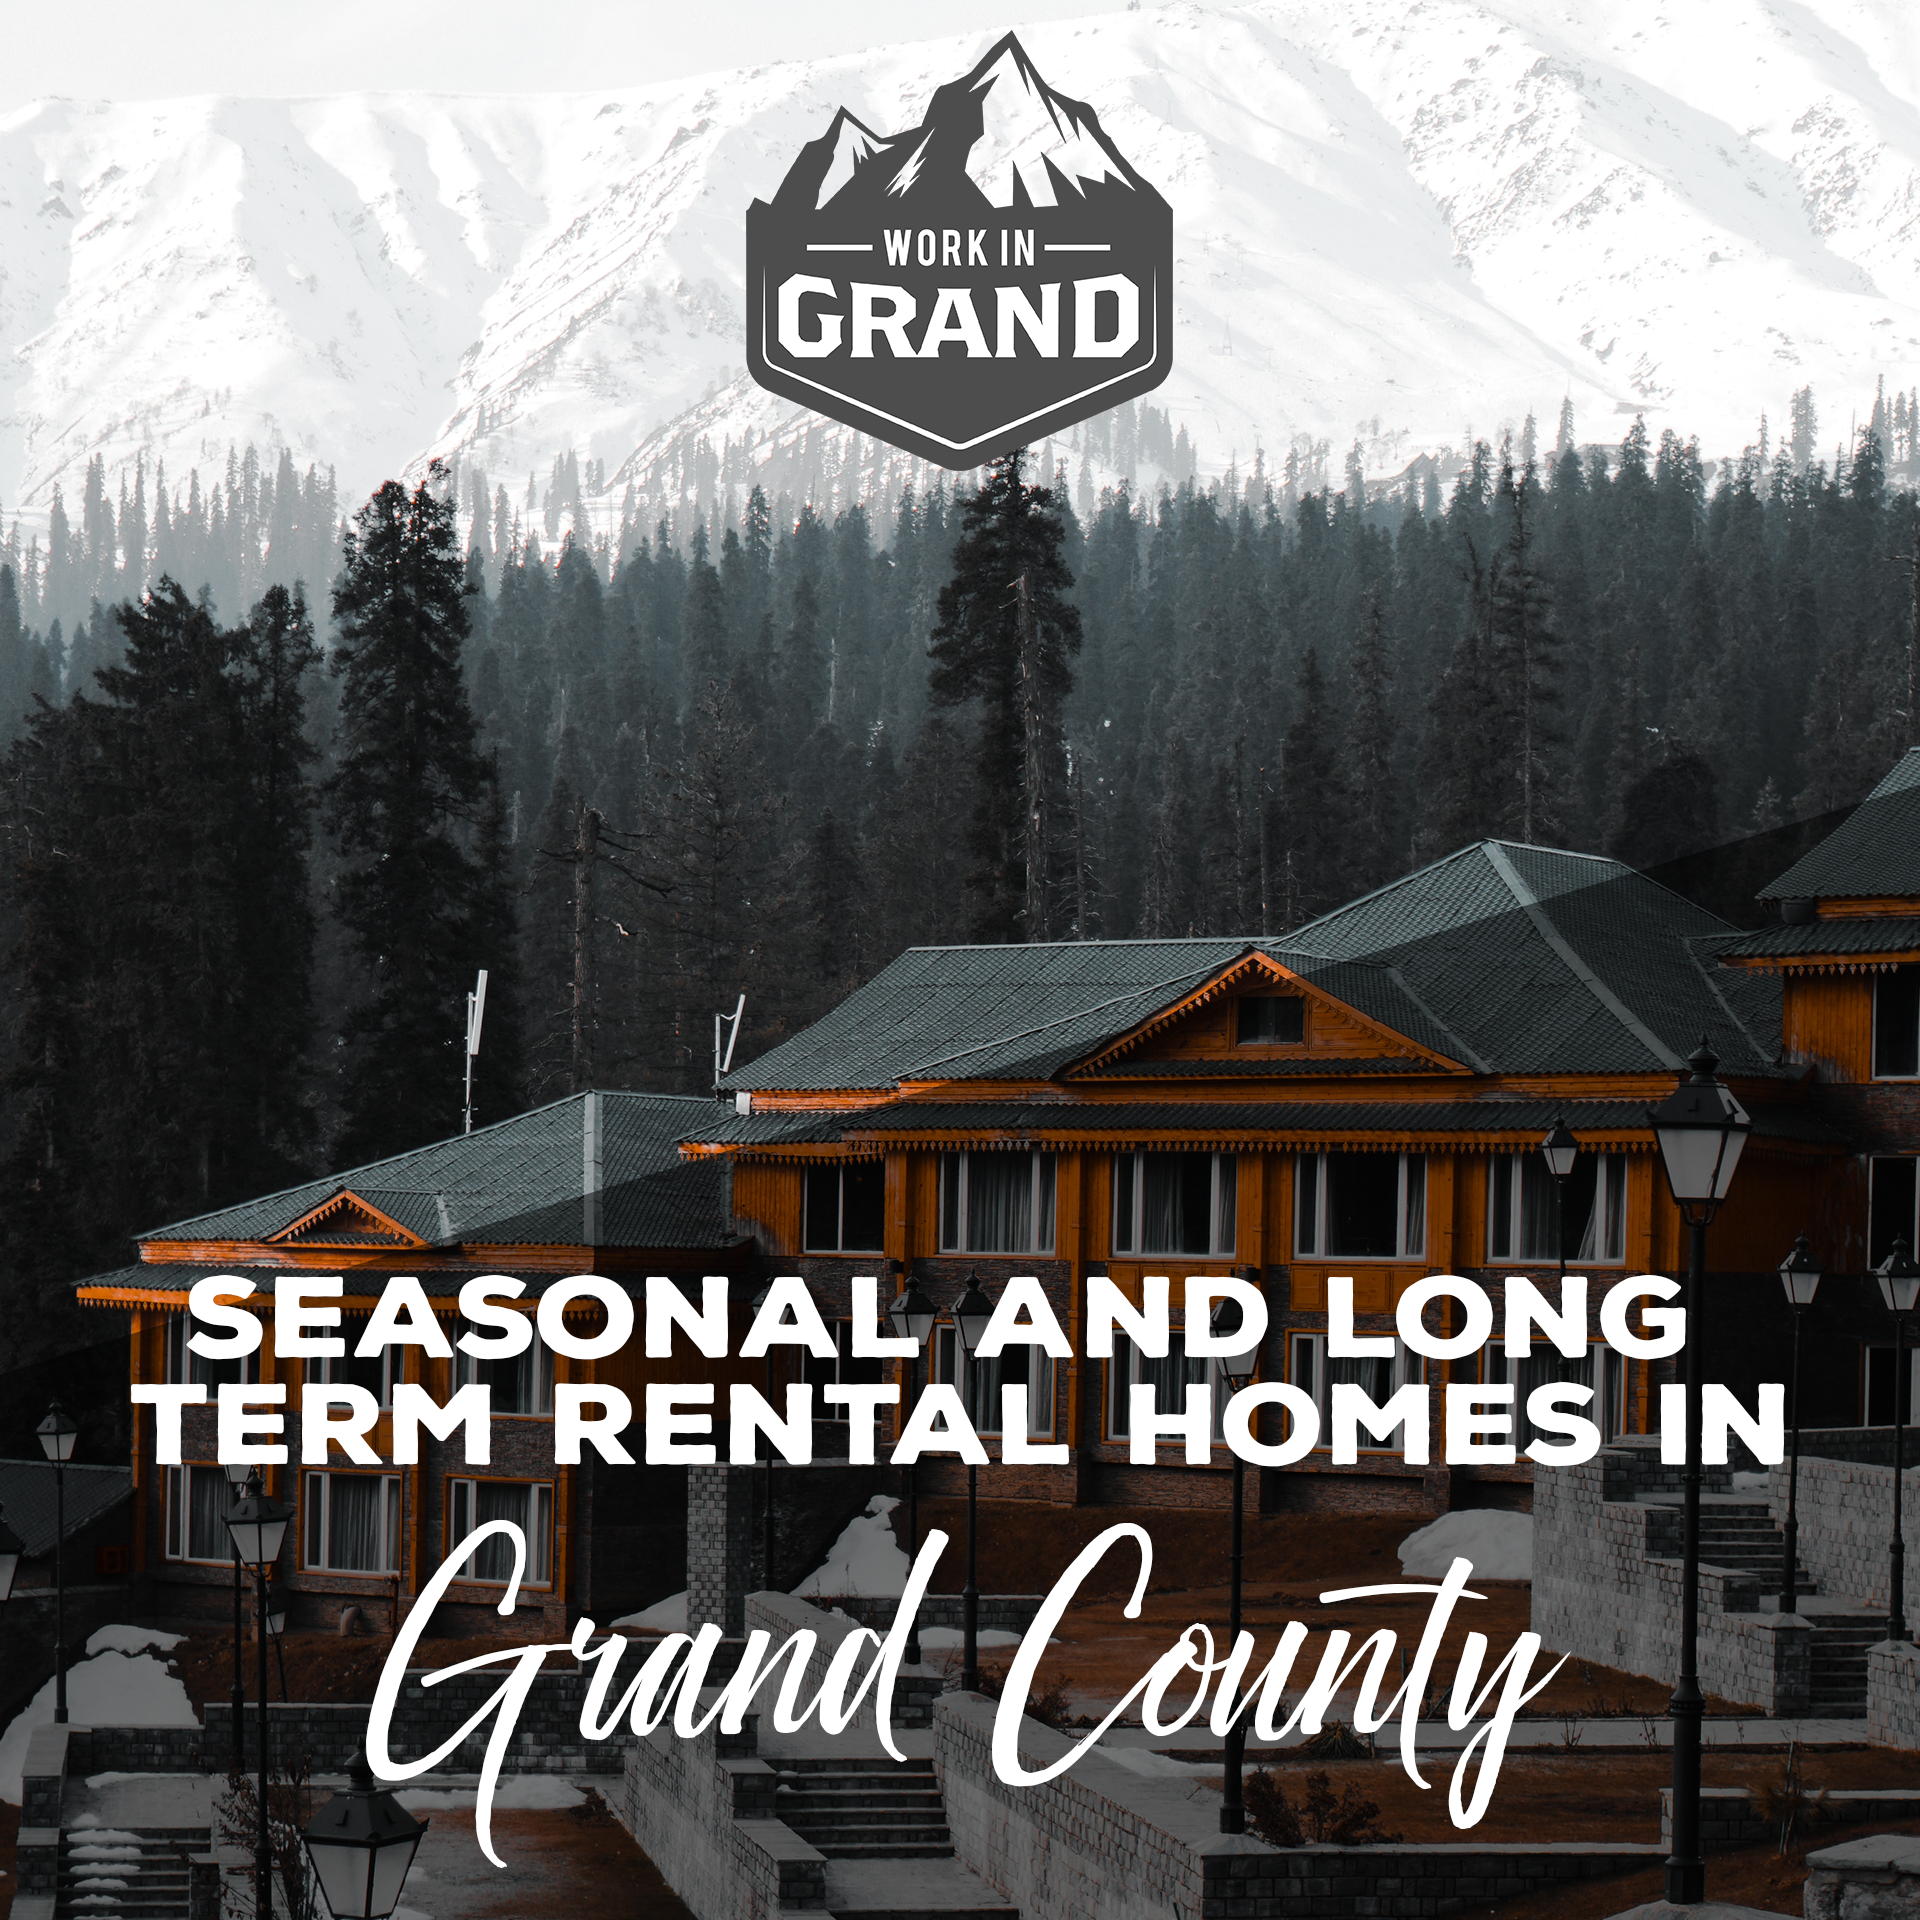 Seasonal and Long Term Rental Homes in Grand County